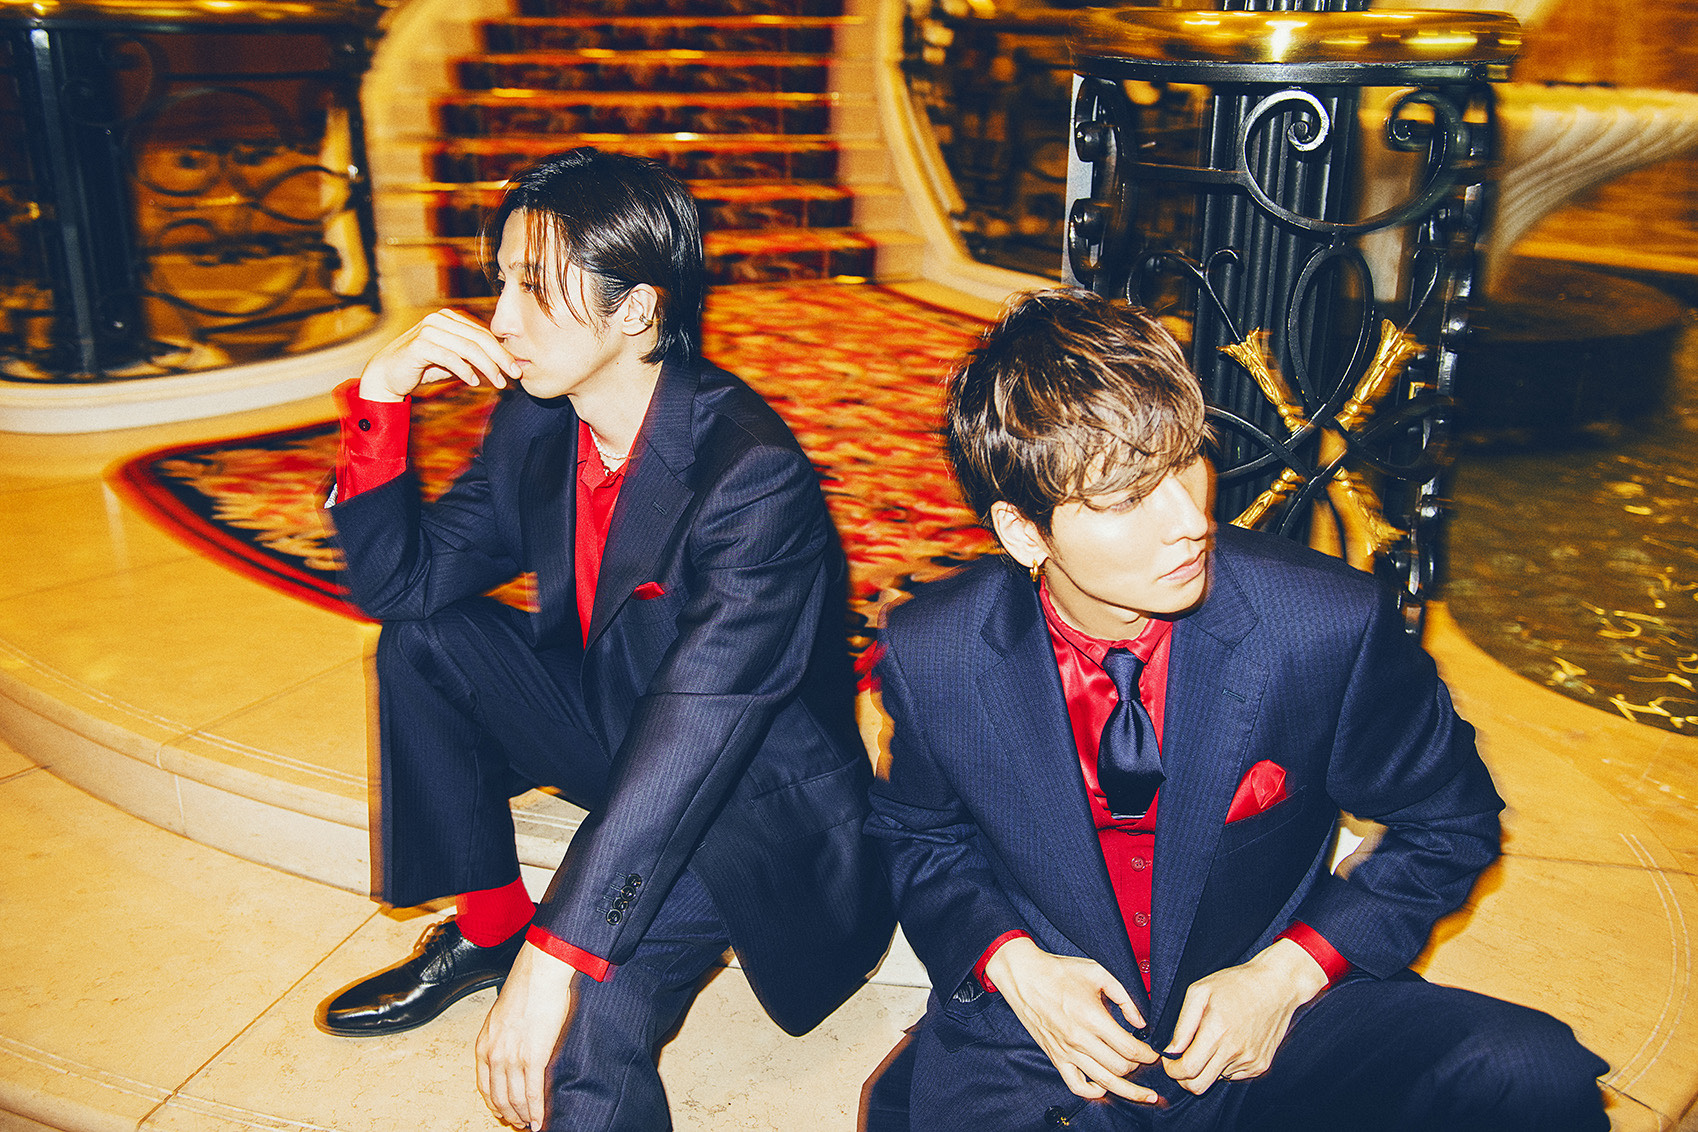 """【Ponycanyon Online Completely Limited Special Box Edition】w-inds. Album 20XX""""We are"""" (CD+DVD+PHOTOBOOK+20XX""""THE BEST""""INSTRUMENTAL CD)Release in November 24th 2021"""